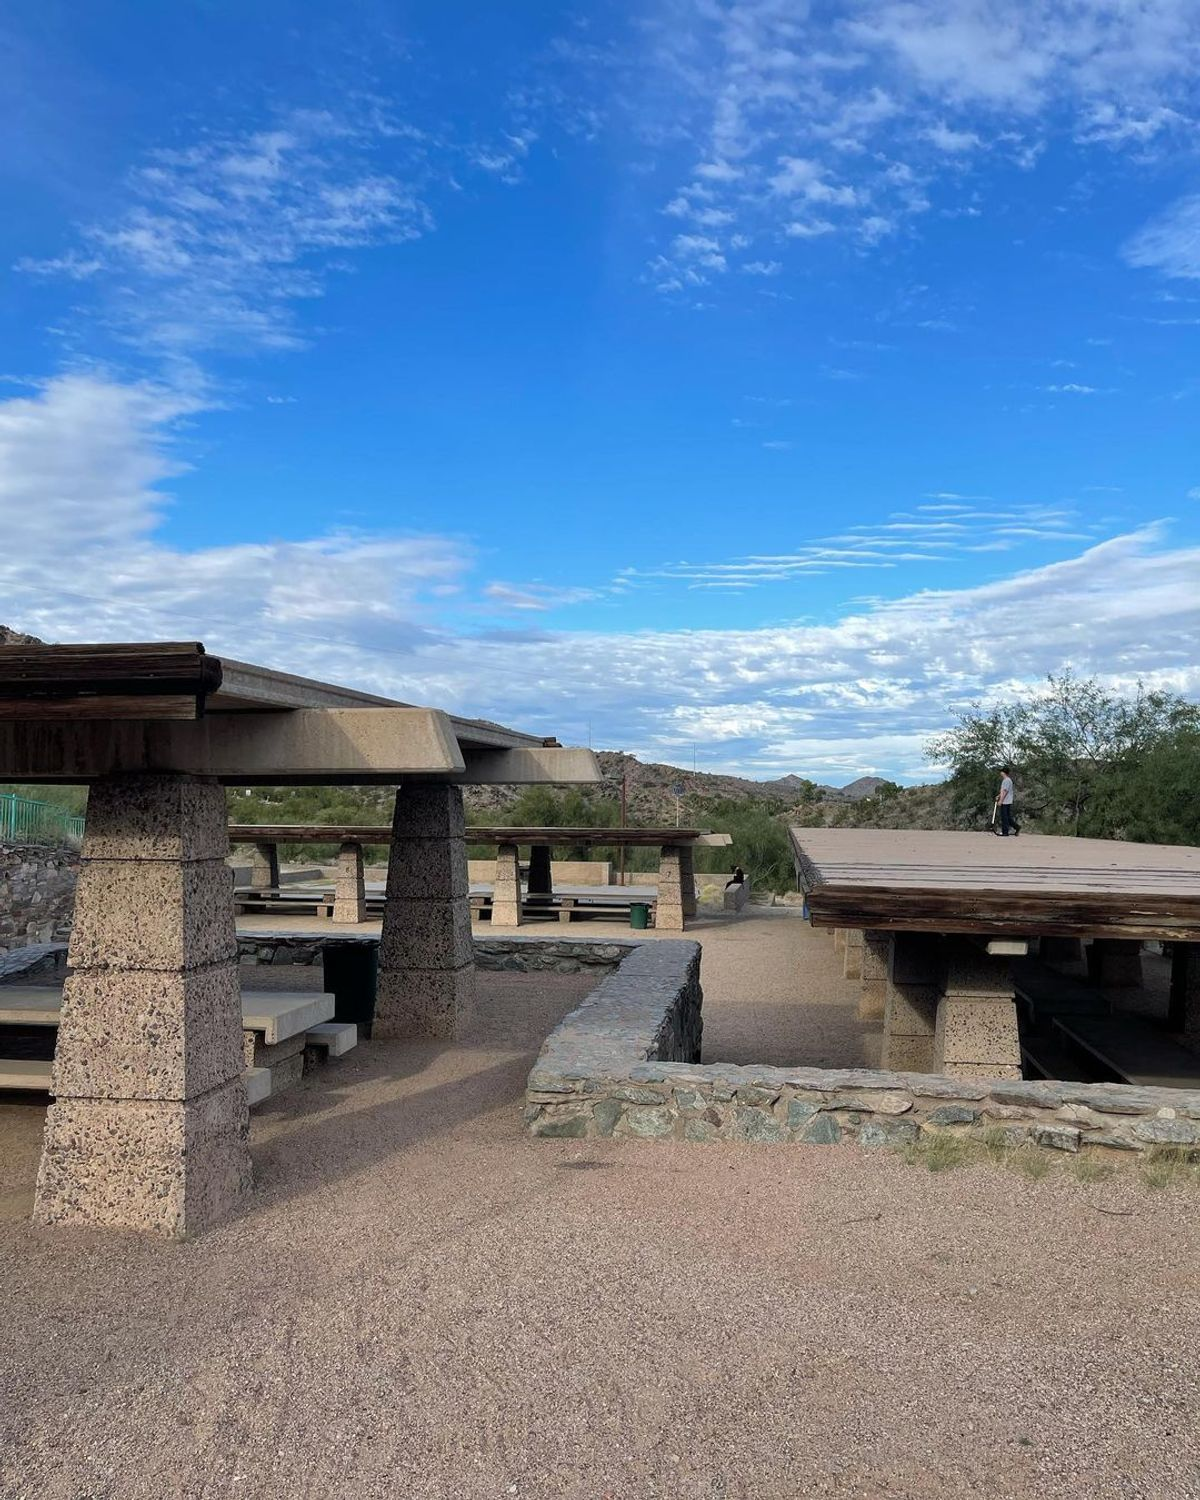 Image for skate spot North Mountain Park - Roof Gaps